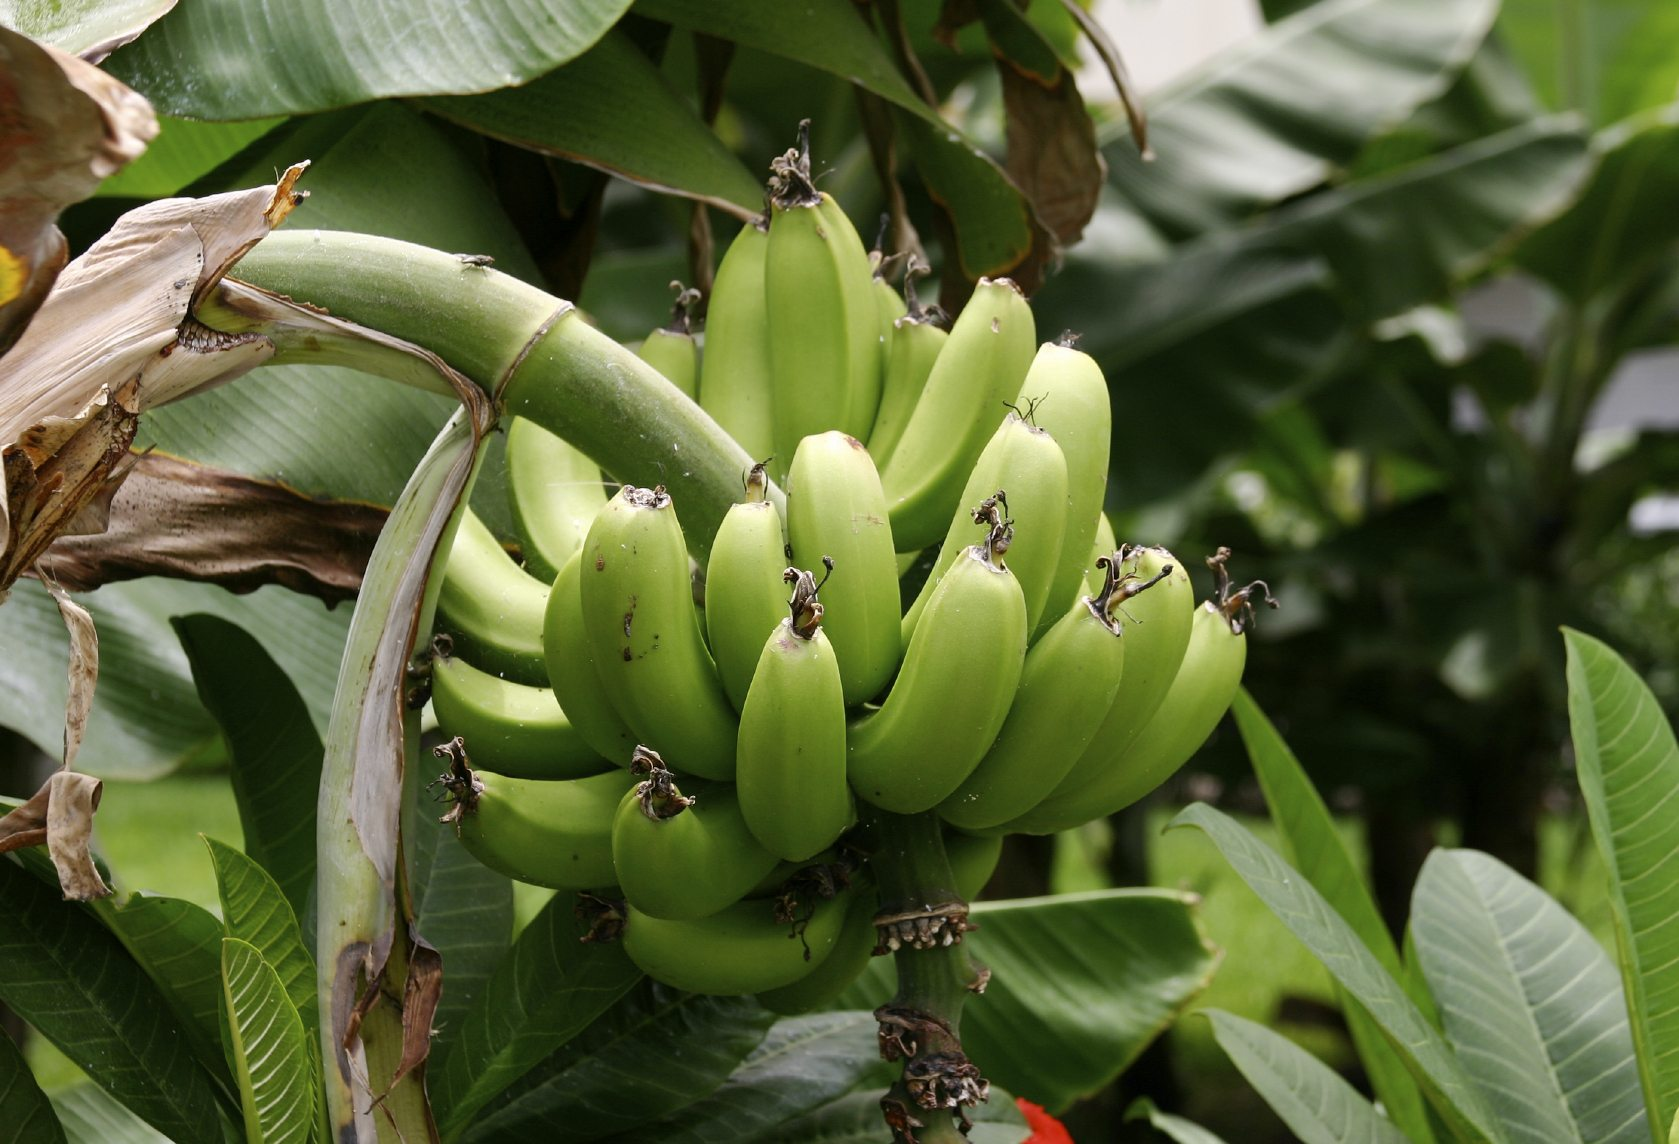 Providing Tree And Plant Care: Caring For Plantain Trees: Information On Growing Plantains